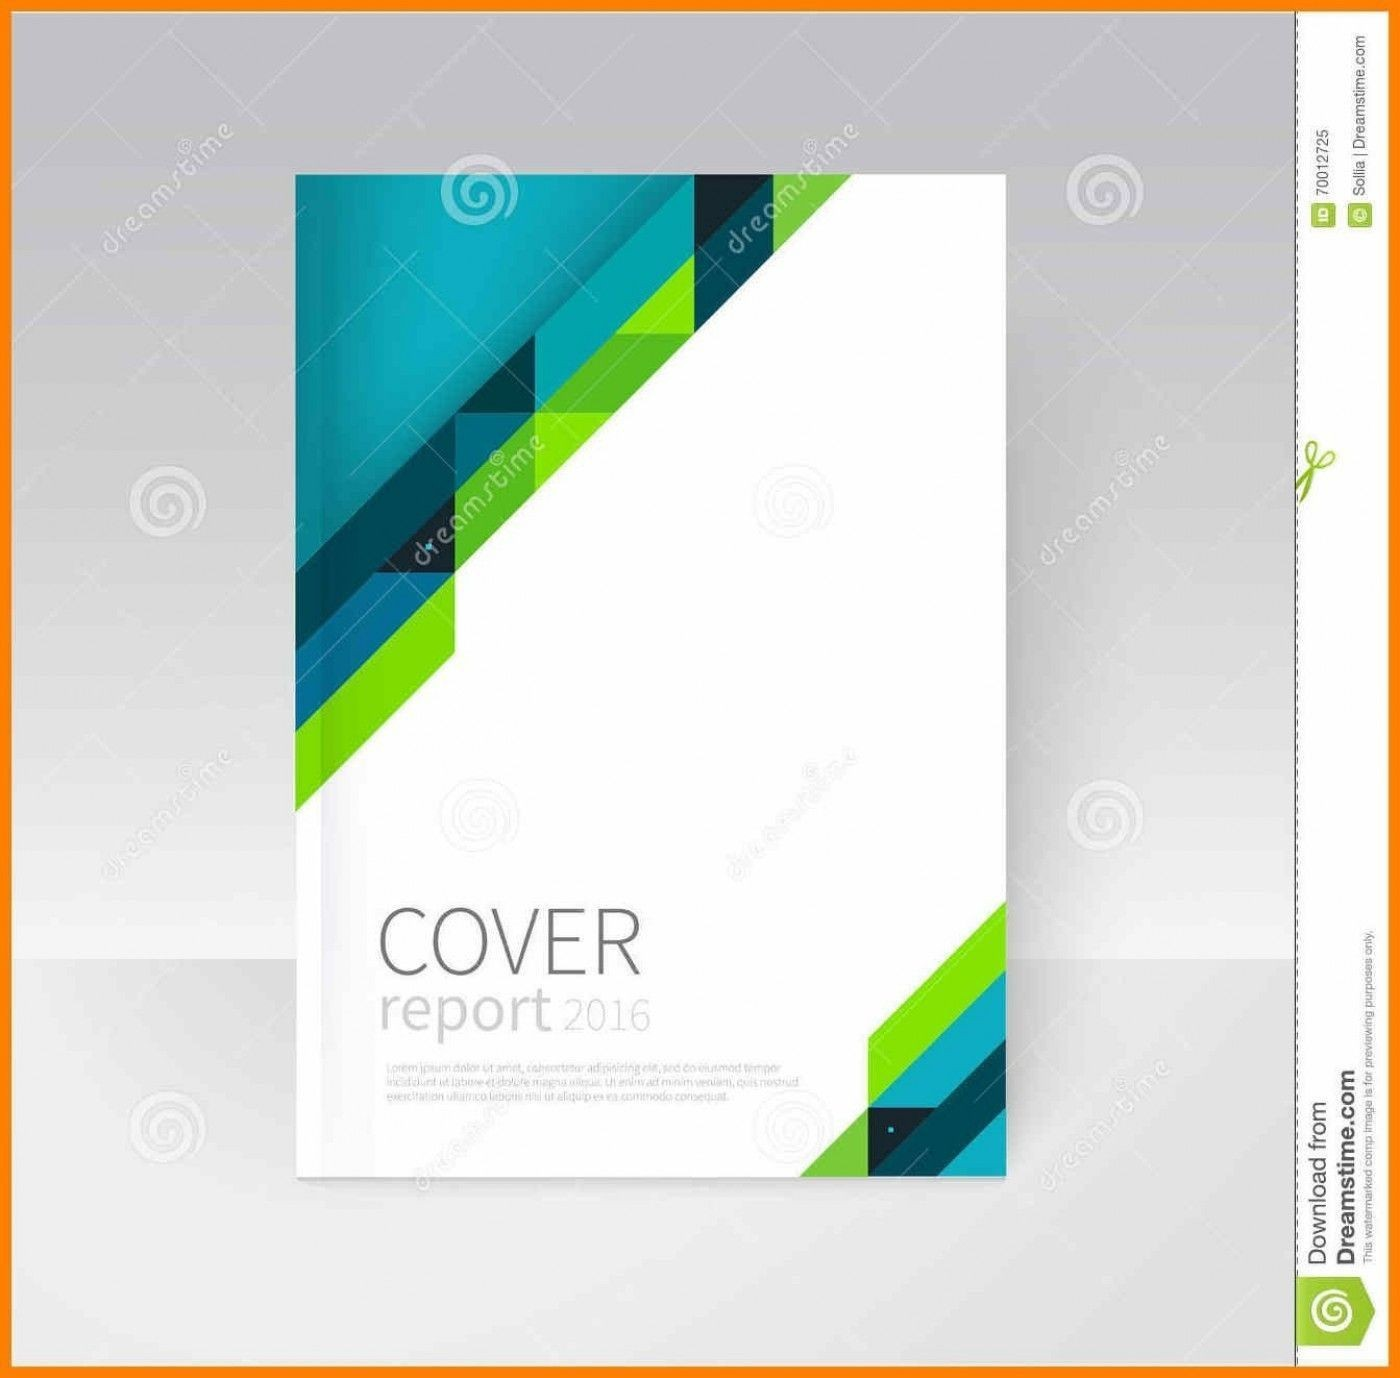 008 Beautiful Free Download Annual Report Cover Design Template Picture  Indesign In Word1400